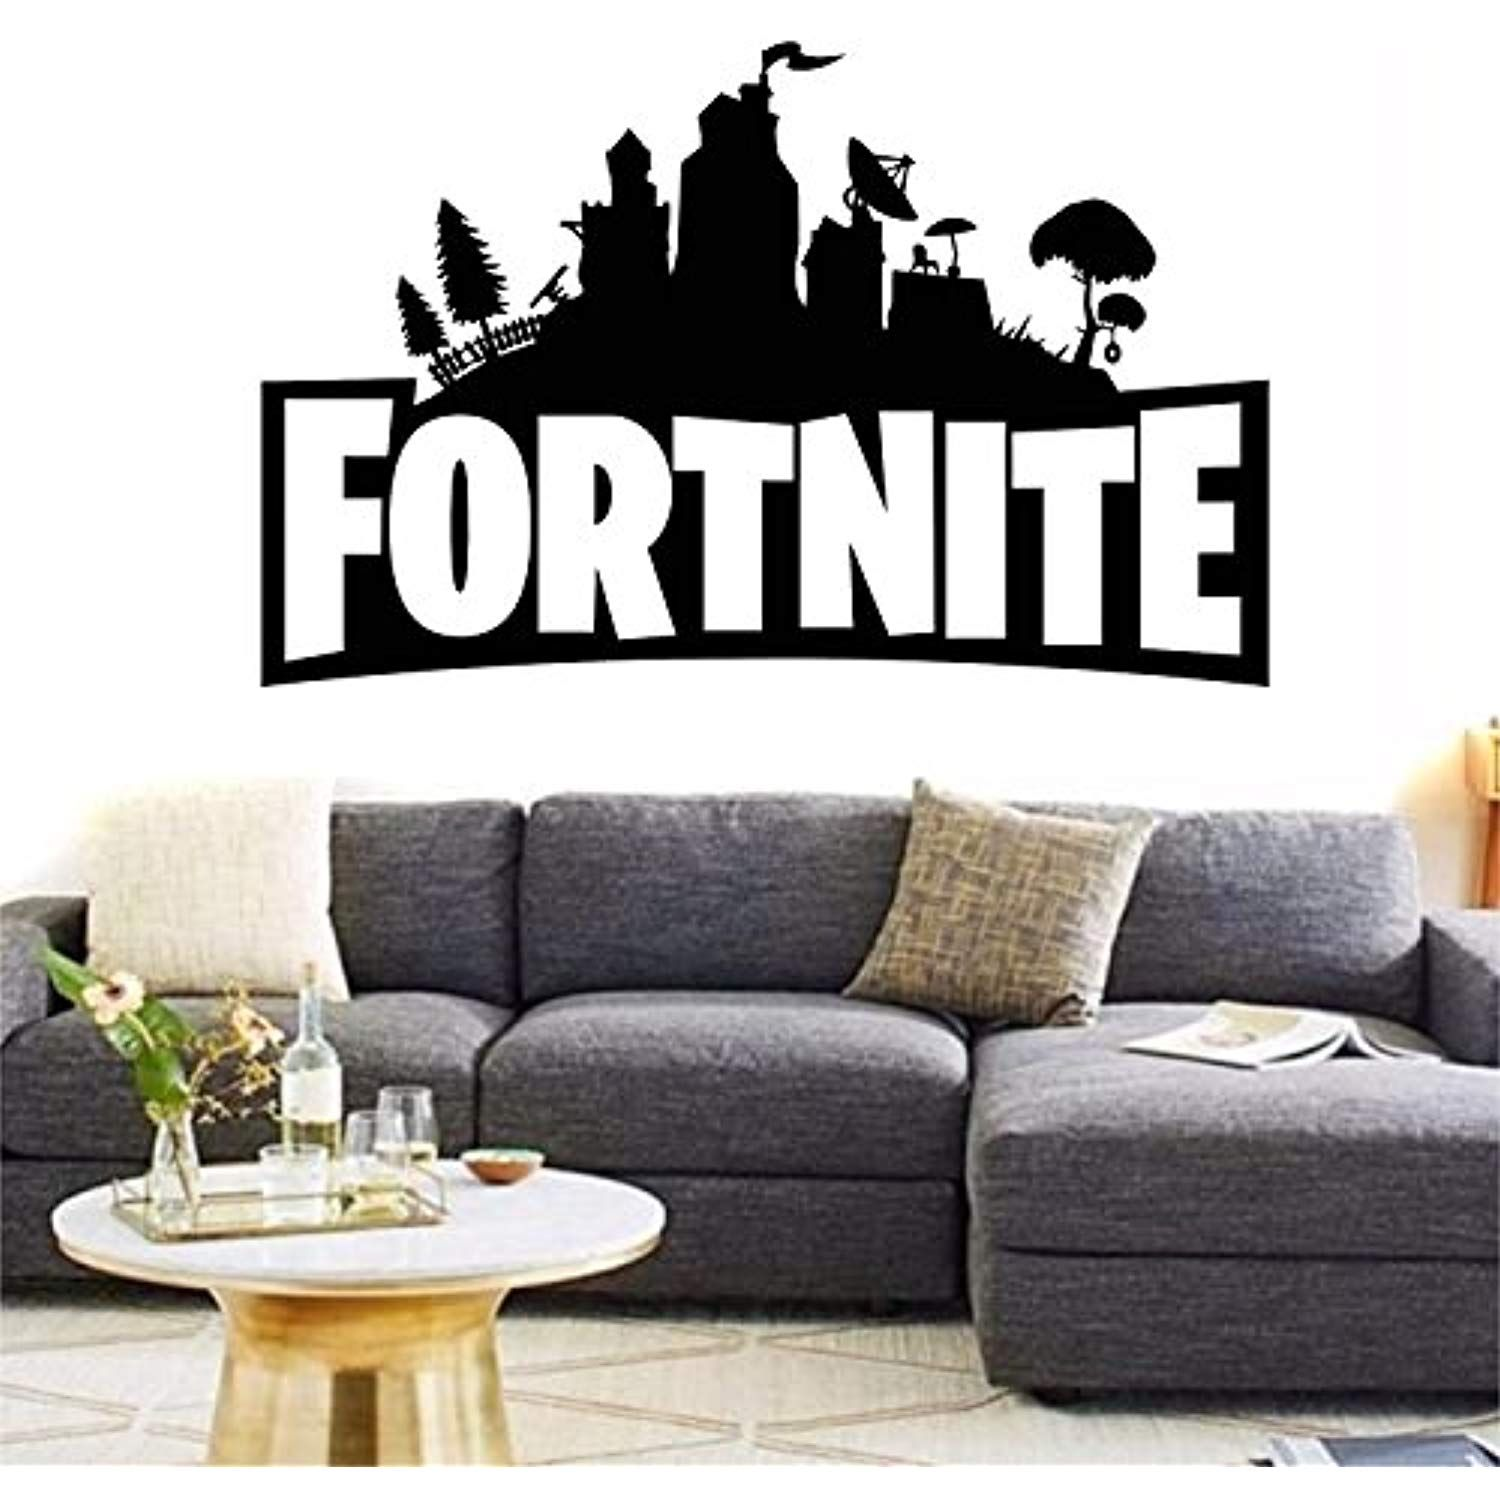 Land Fortnite Virtual Gamer Pc Xbox One Ps4 Decal Home